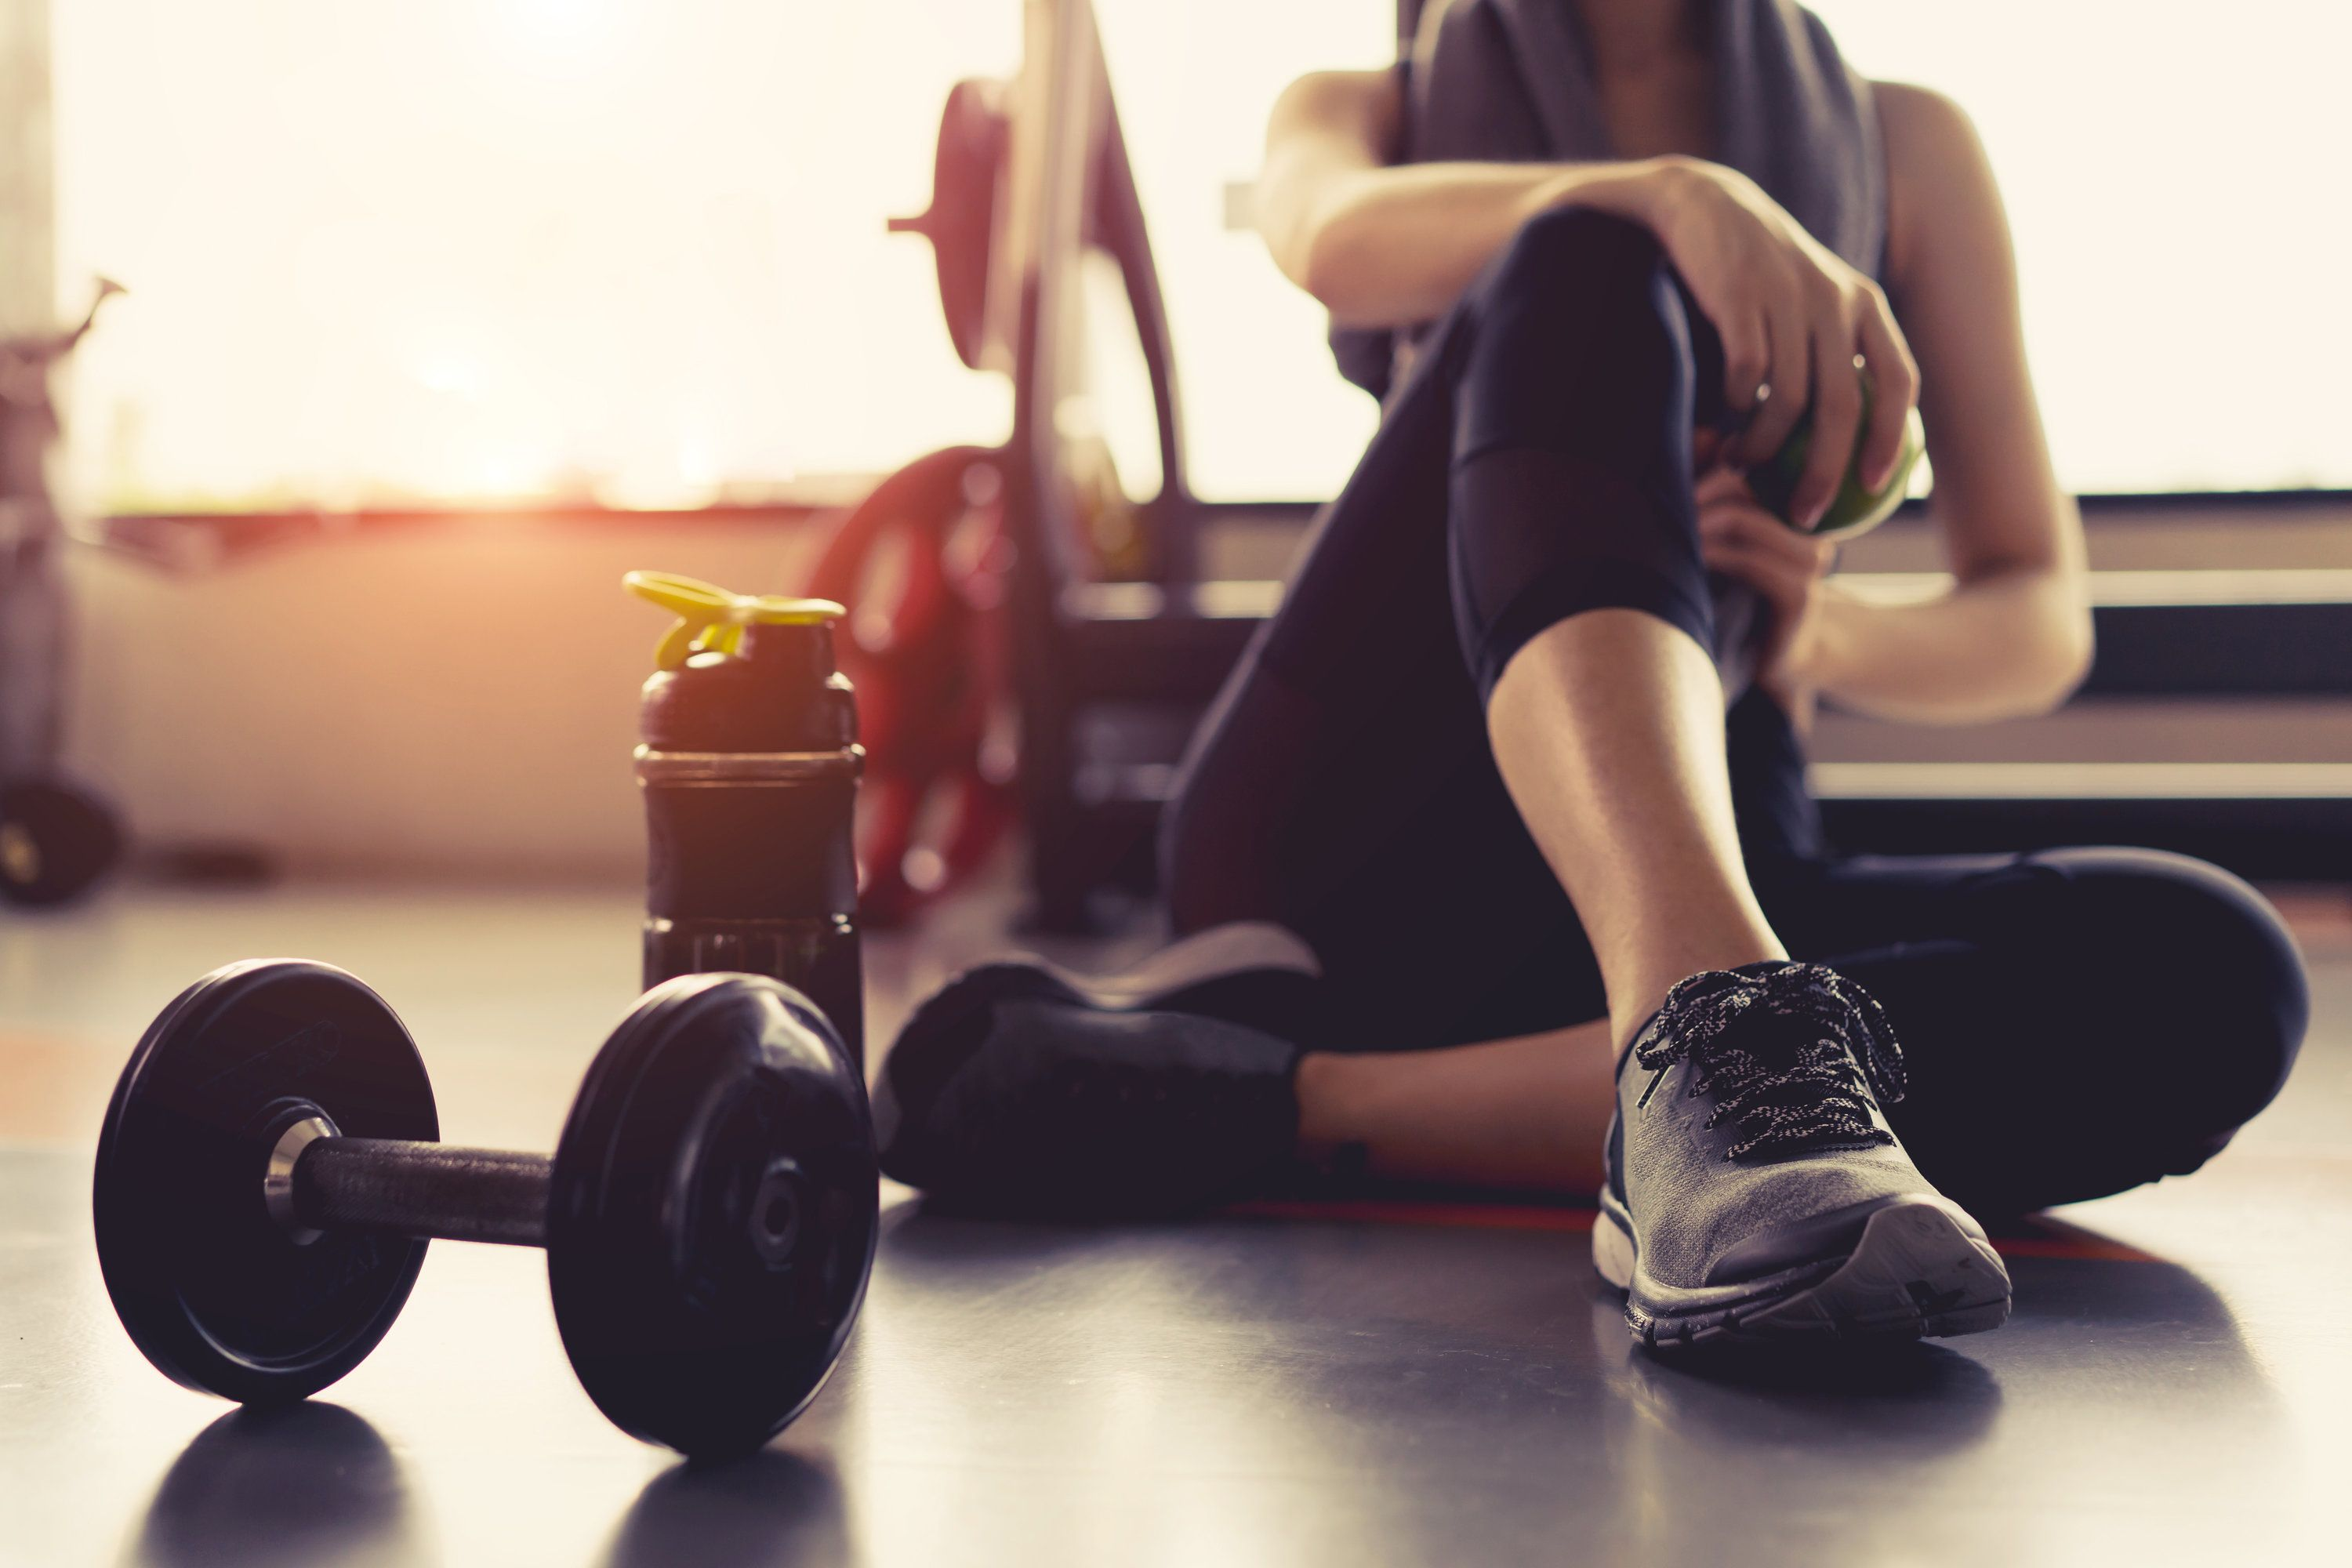 How long does it take to see results from working out? Fitness experts weigh in